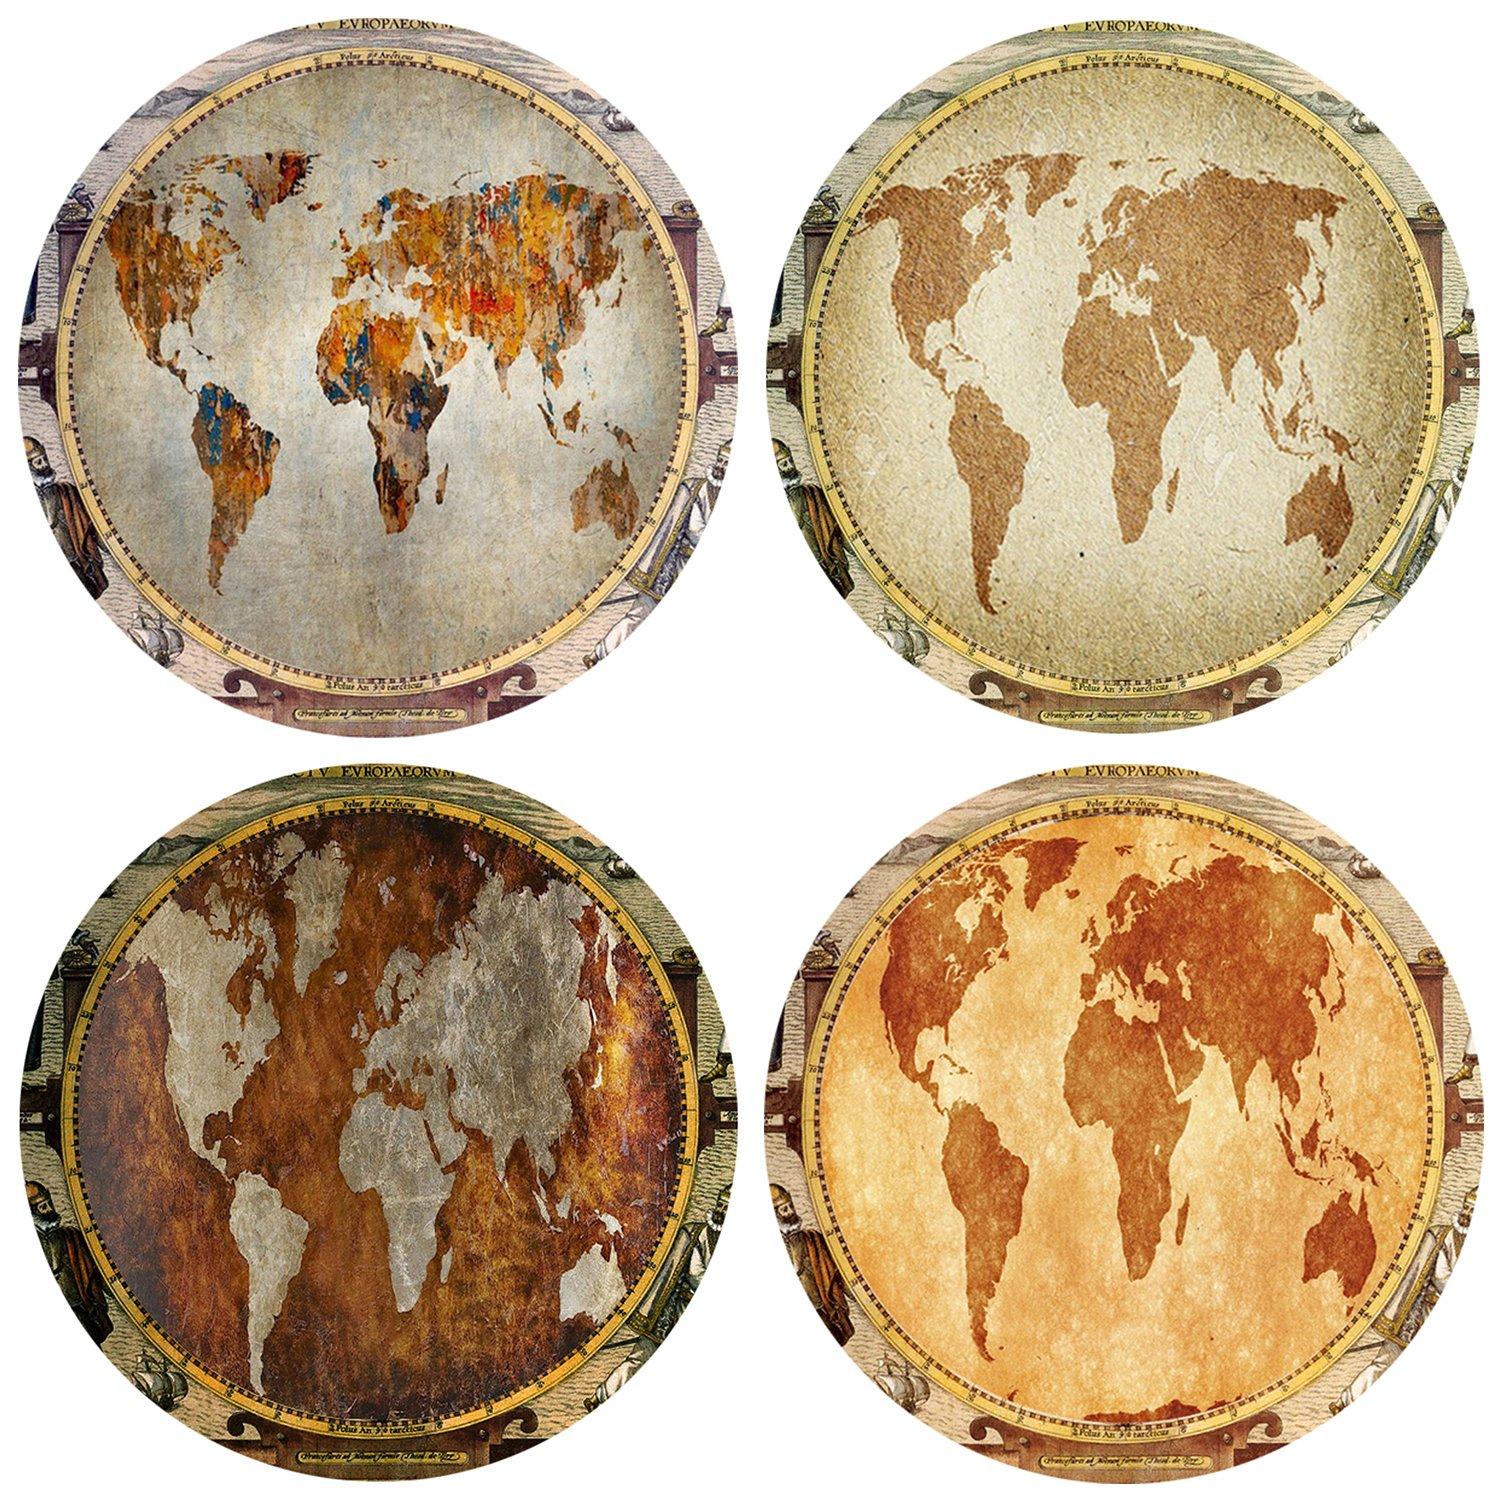 QIMOUSE Coasters Non Slip Set of 4, Ceramic World Map Design Coasters